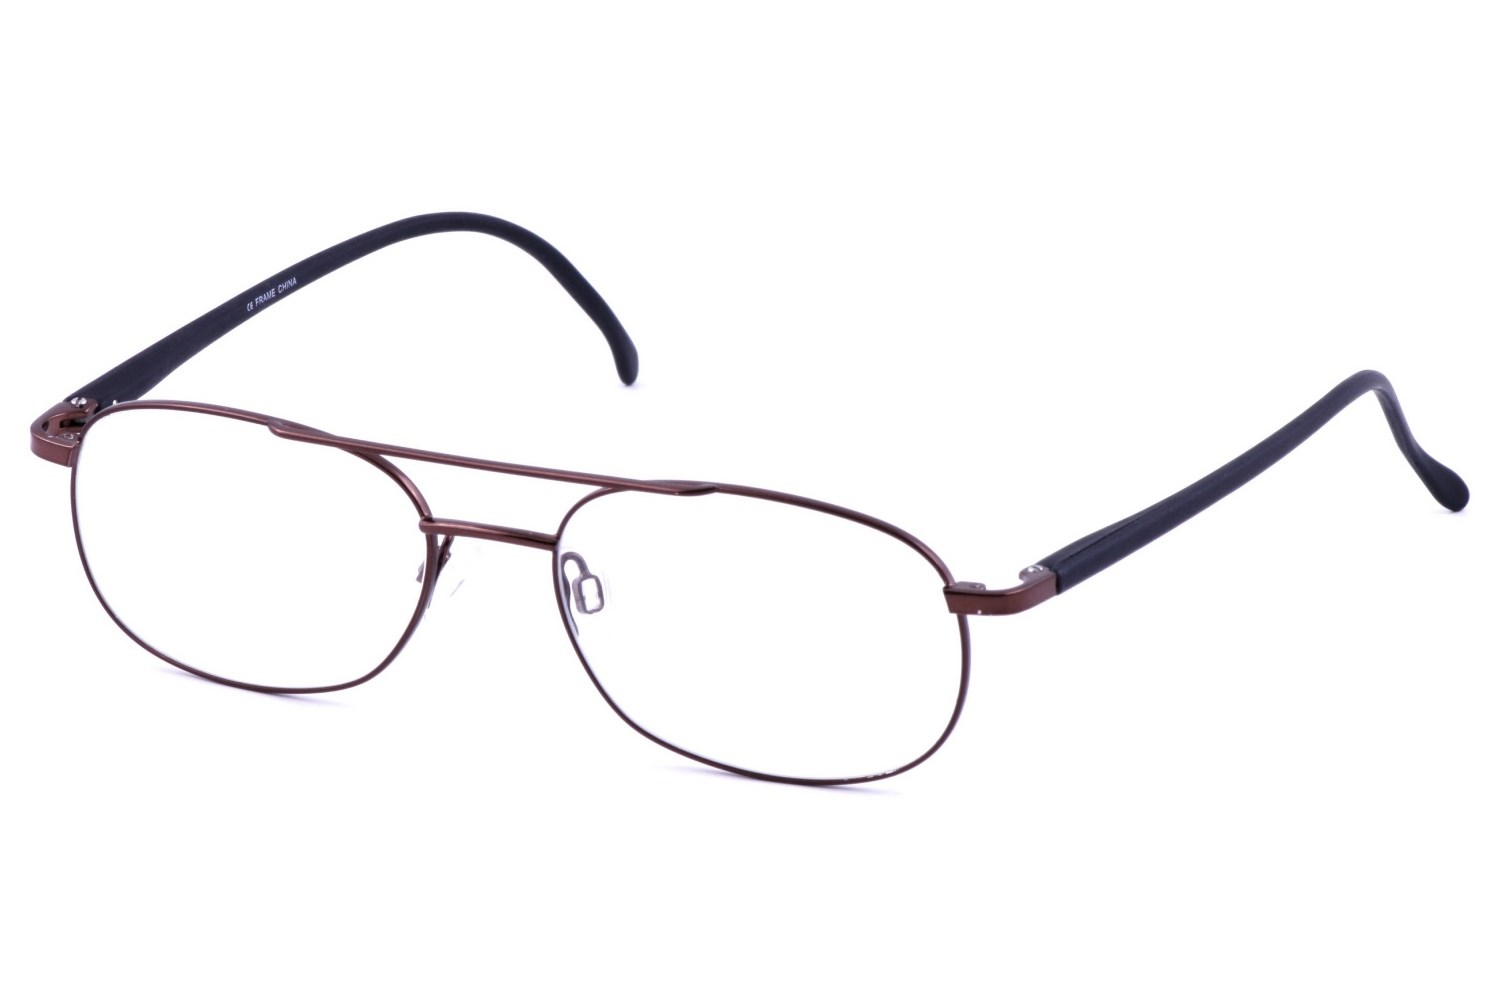 Artistic Values AS 352 Prescription Eyeglasses Frames